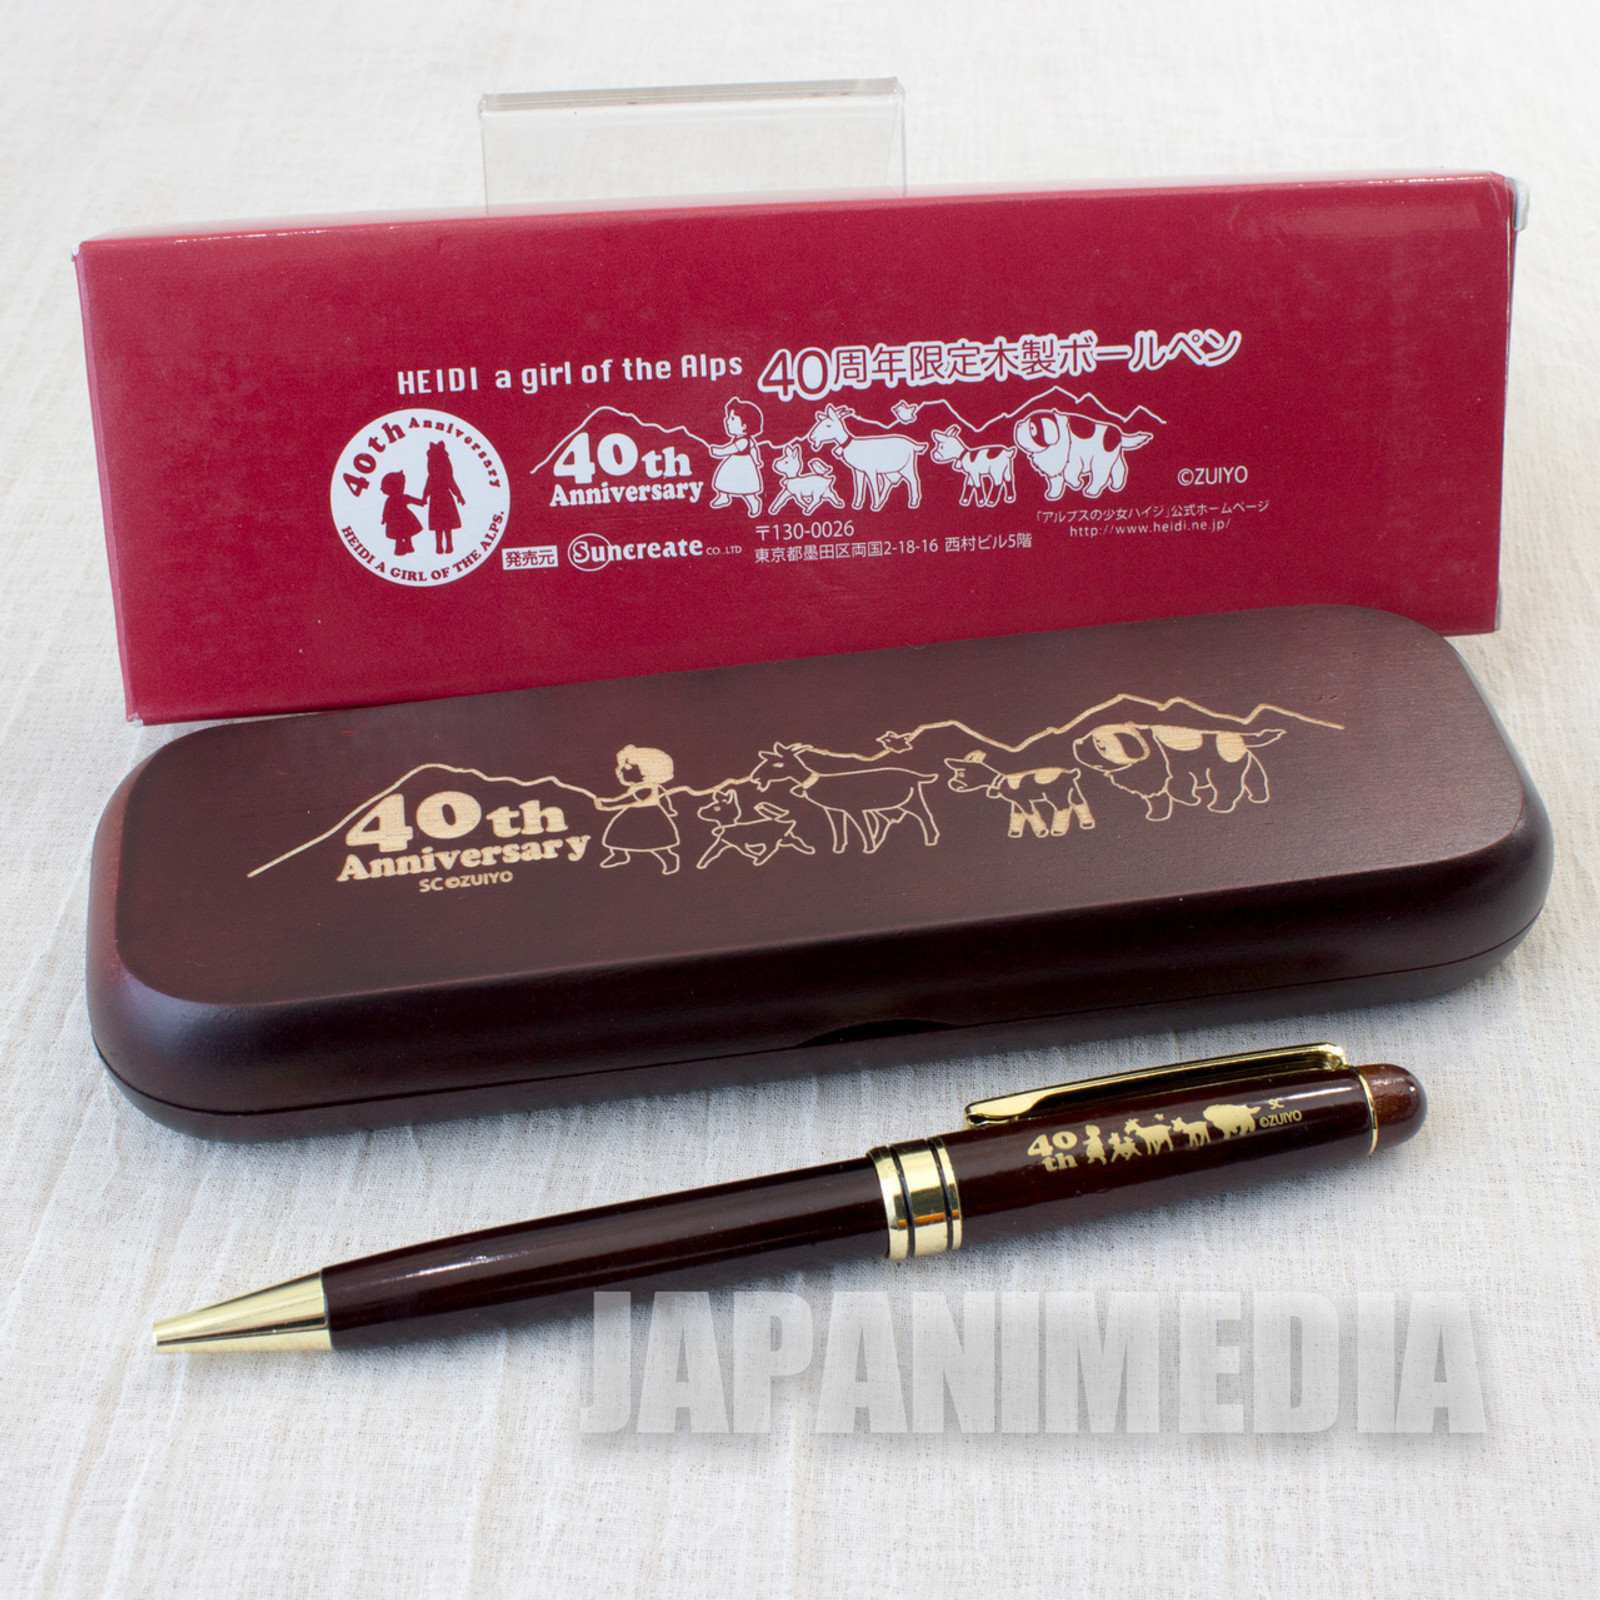 Heidi Girl of the Alps Wooden Ballpoint pen & Wooden Case 40th Anniversary JAPAN ANIME